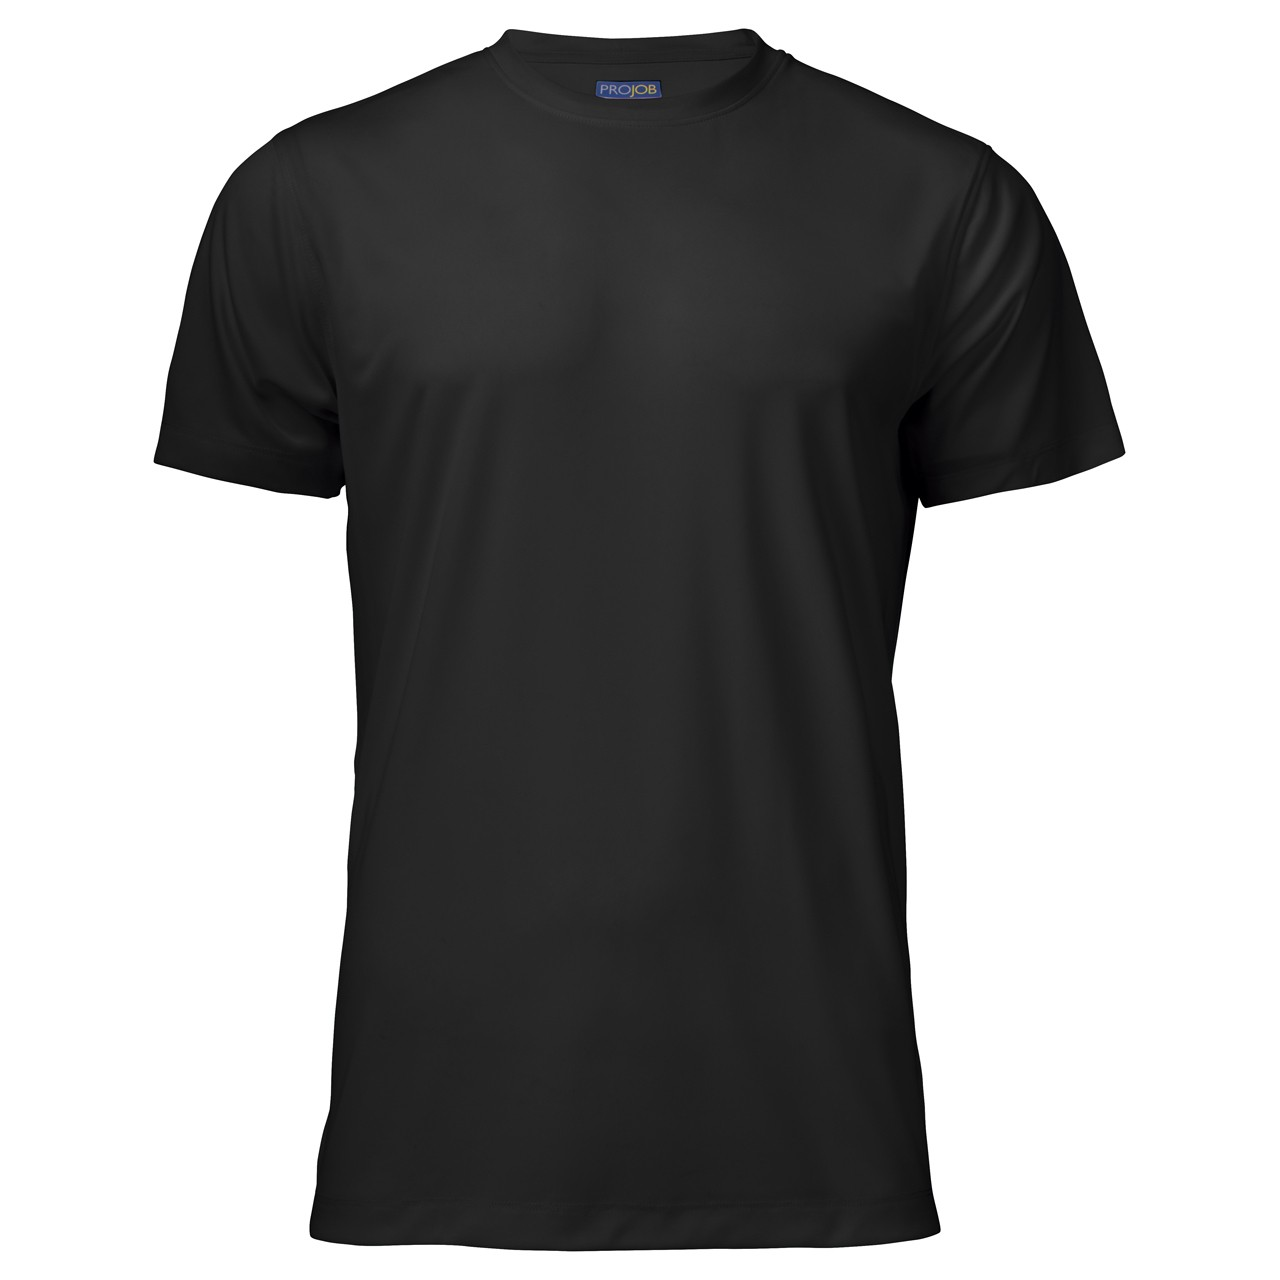 Arbeits T Shirt aus Funktions Gewebe Projob®